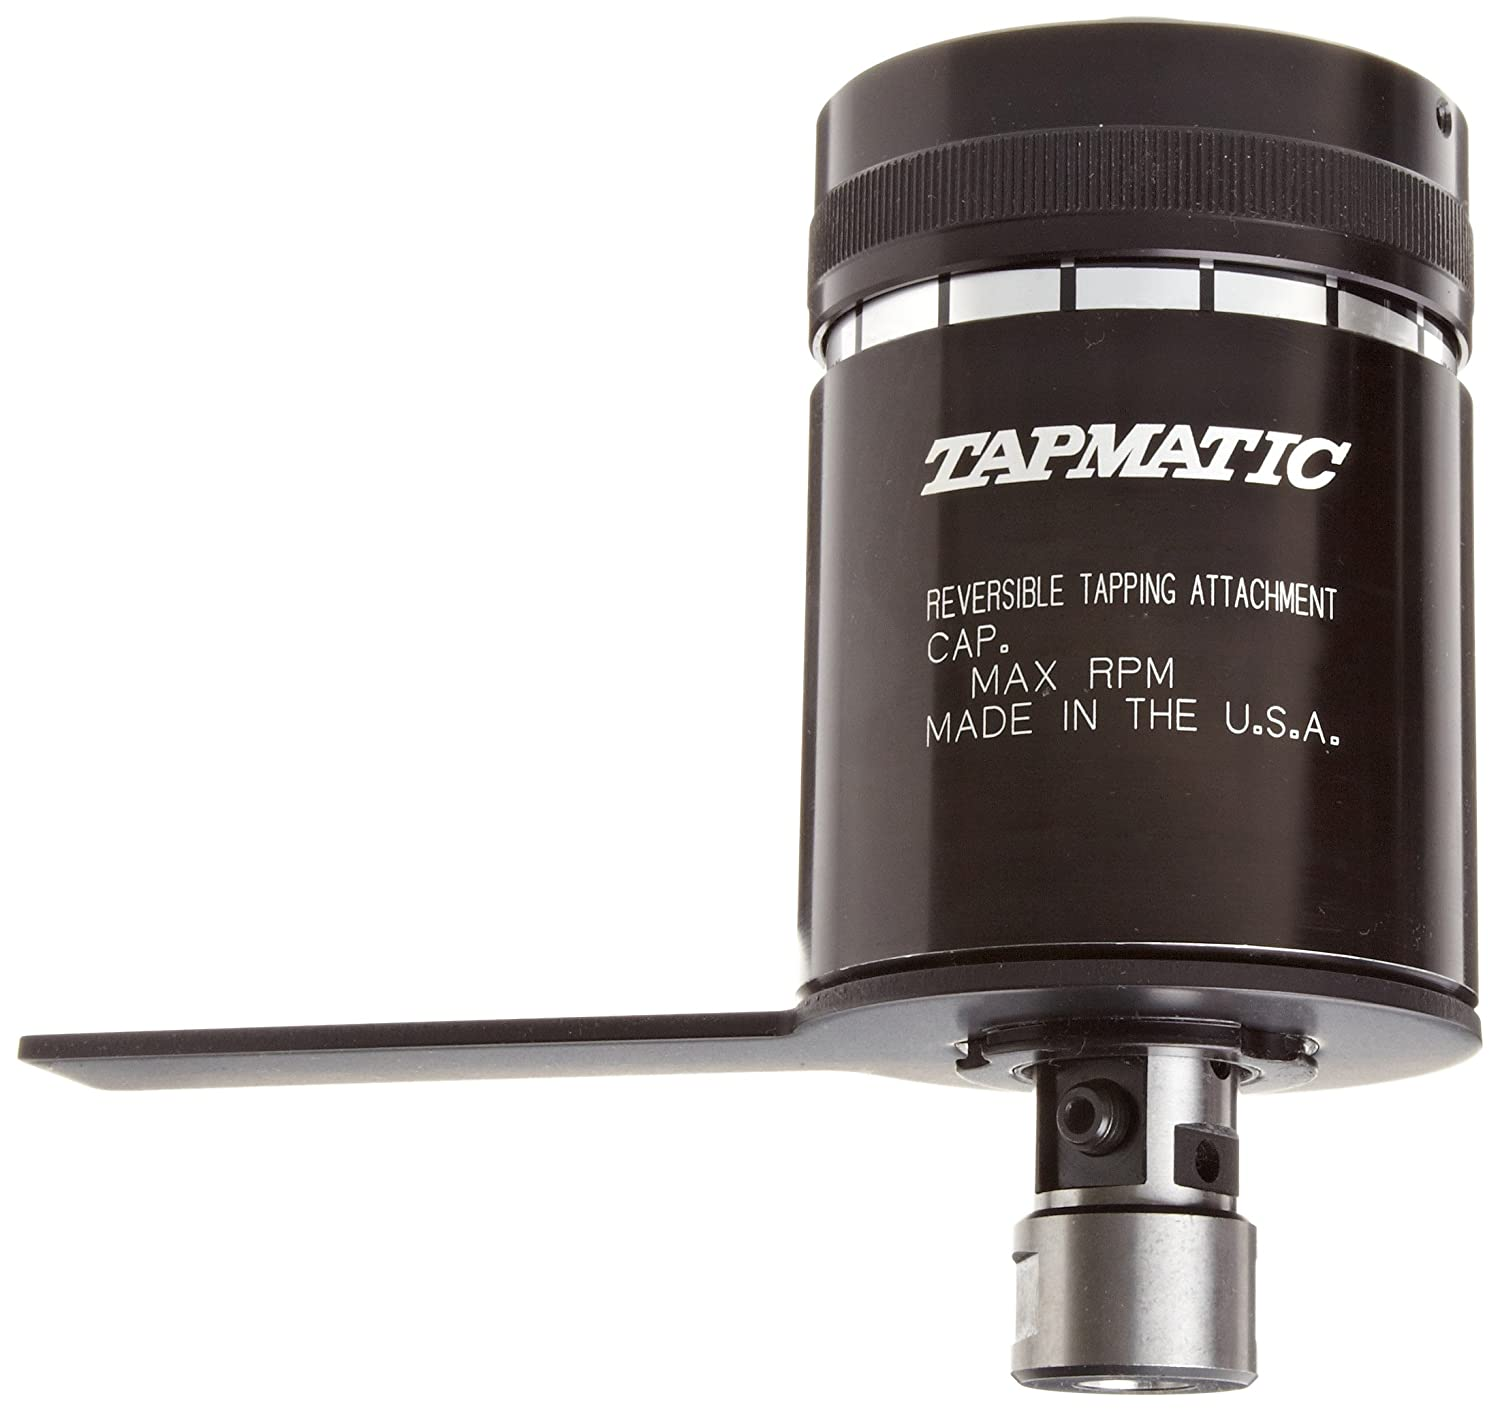 Tapmatic RX 50 Self-Reversing Tapping Head, 6JT Taper Mount, 6-1/2' and M3-M12 Capacity 6-1/2 and M3-M12 Capacity Tapmatic Corporation 015006